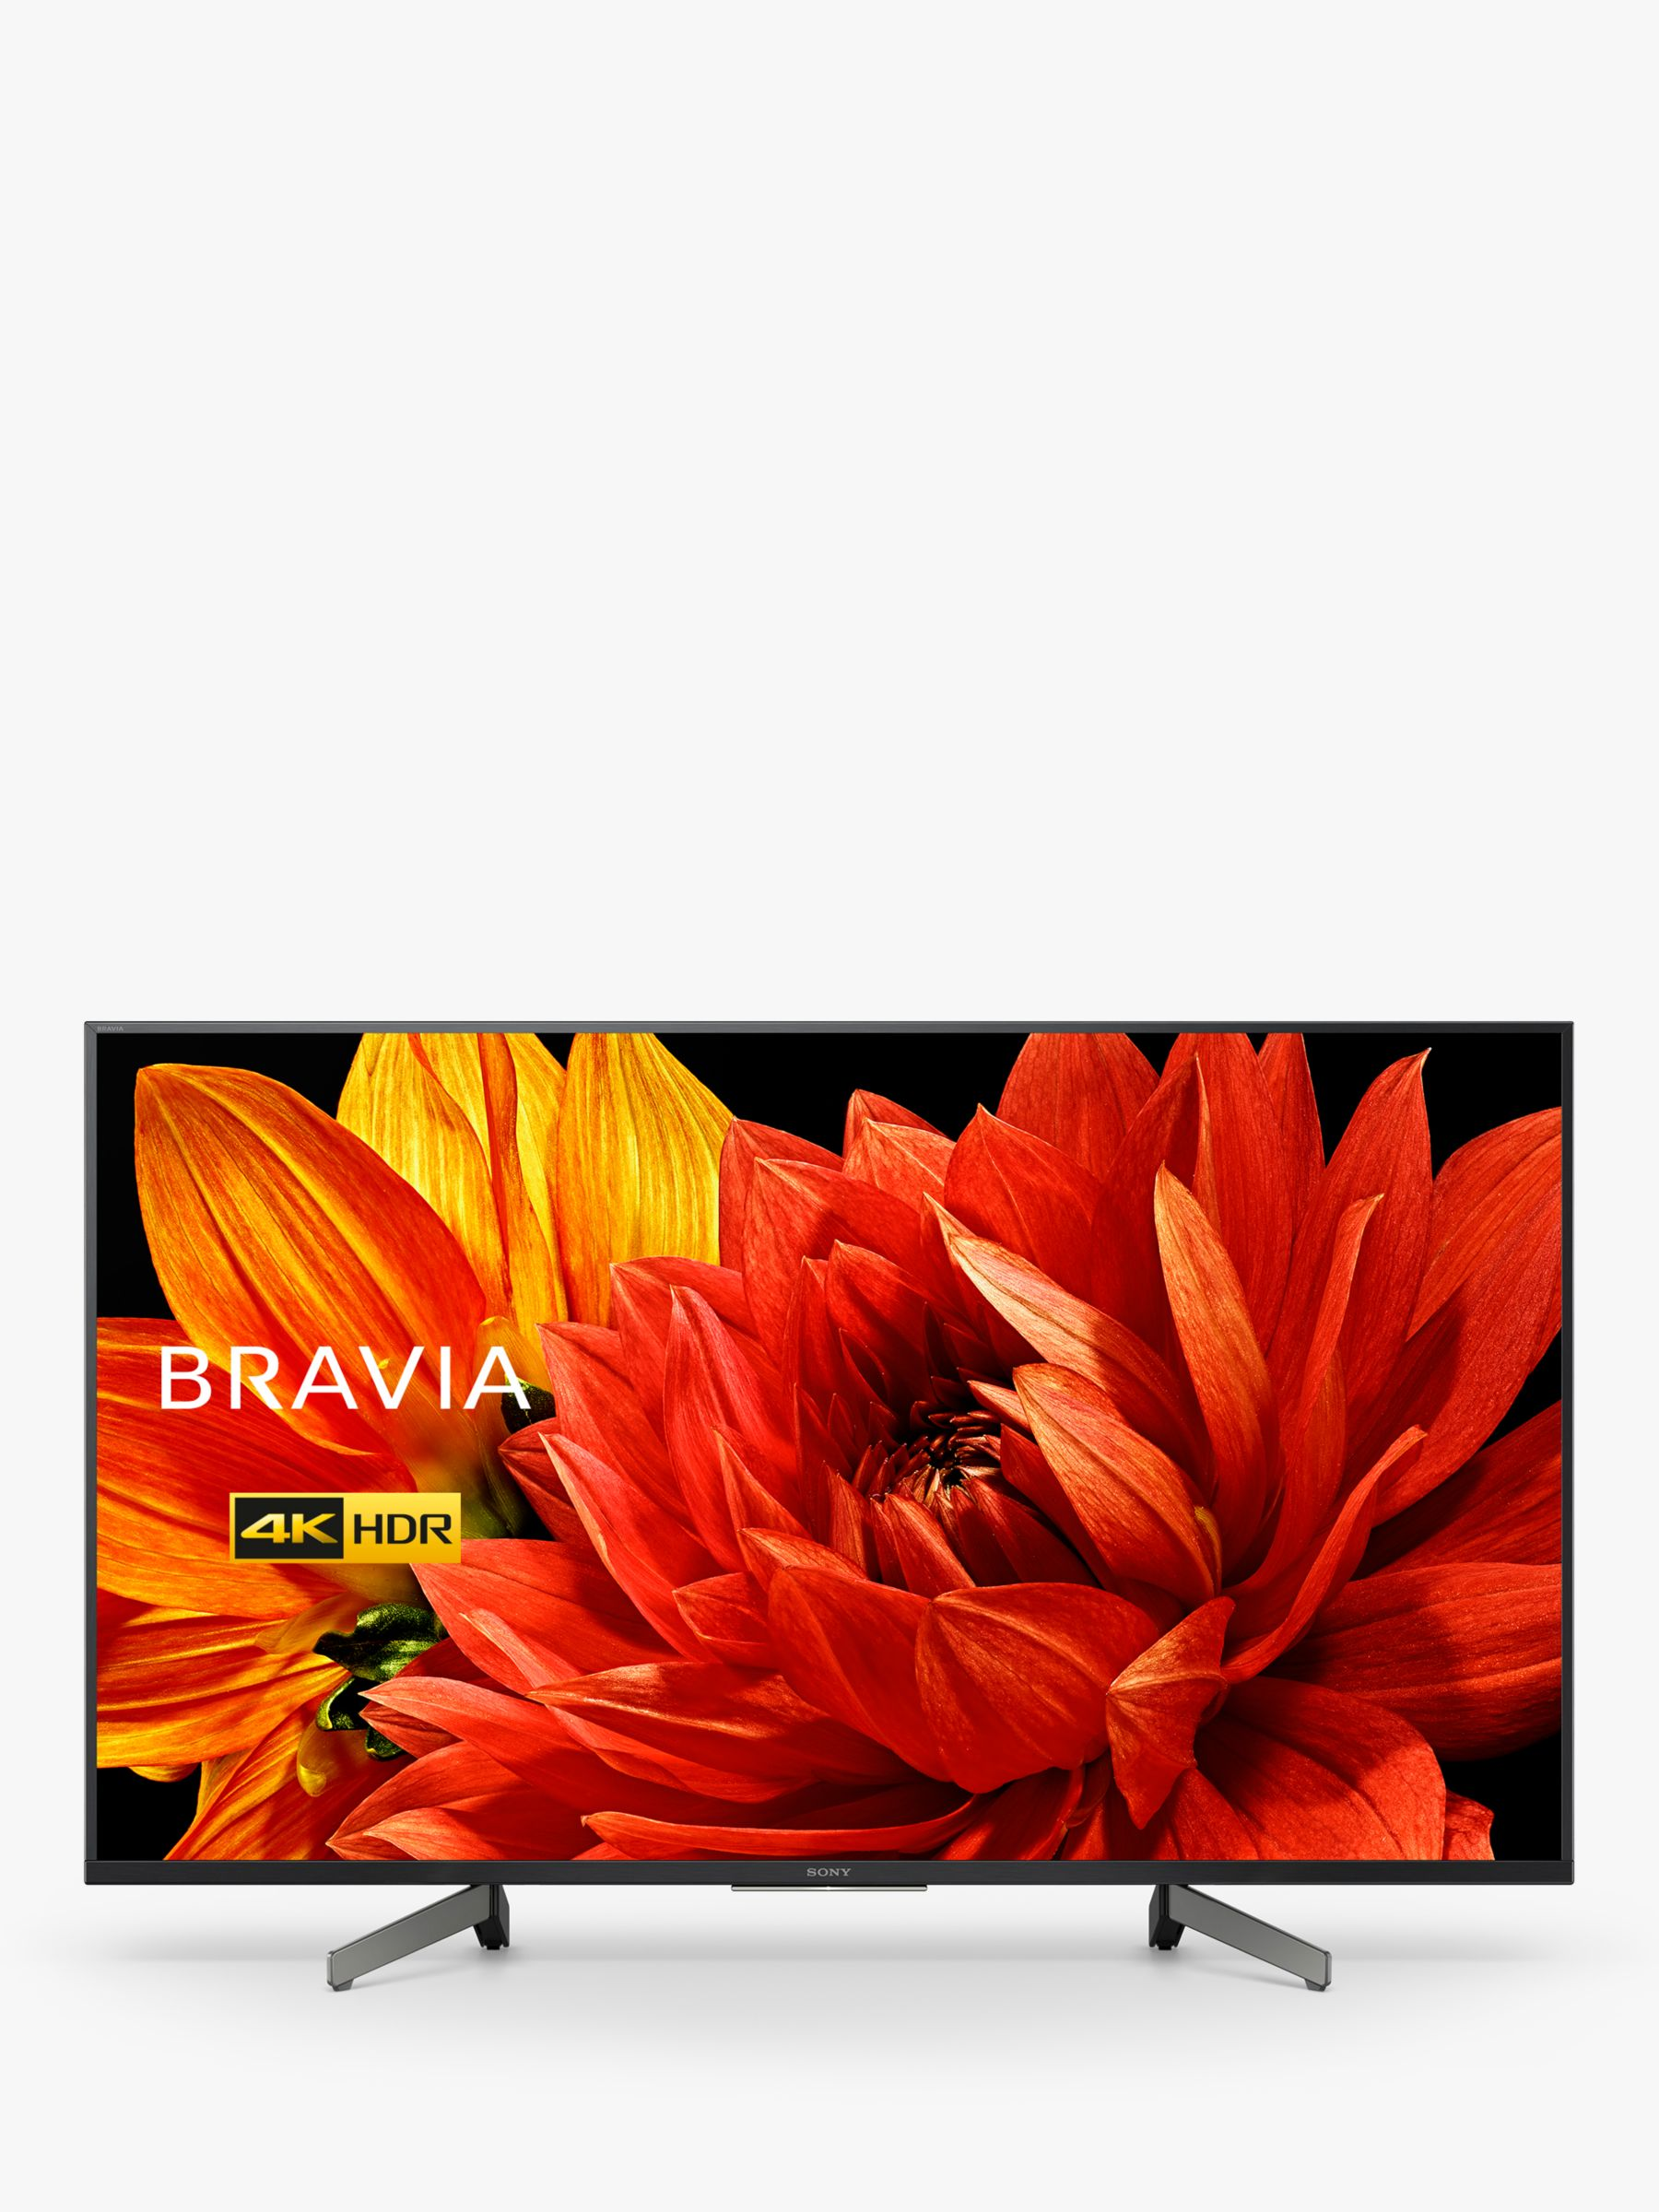 Sony Bravia KD49XG8305 (2019) LED HDR 4K Ultra HD Smart Android TV, 49